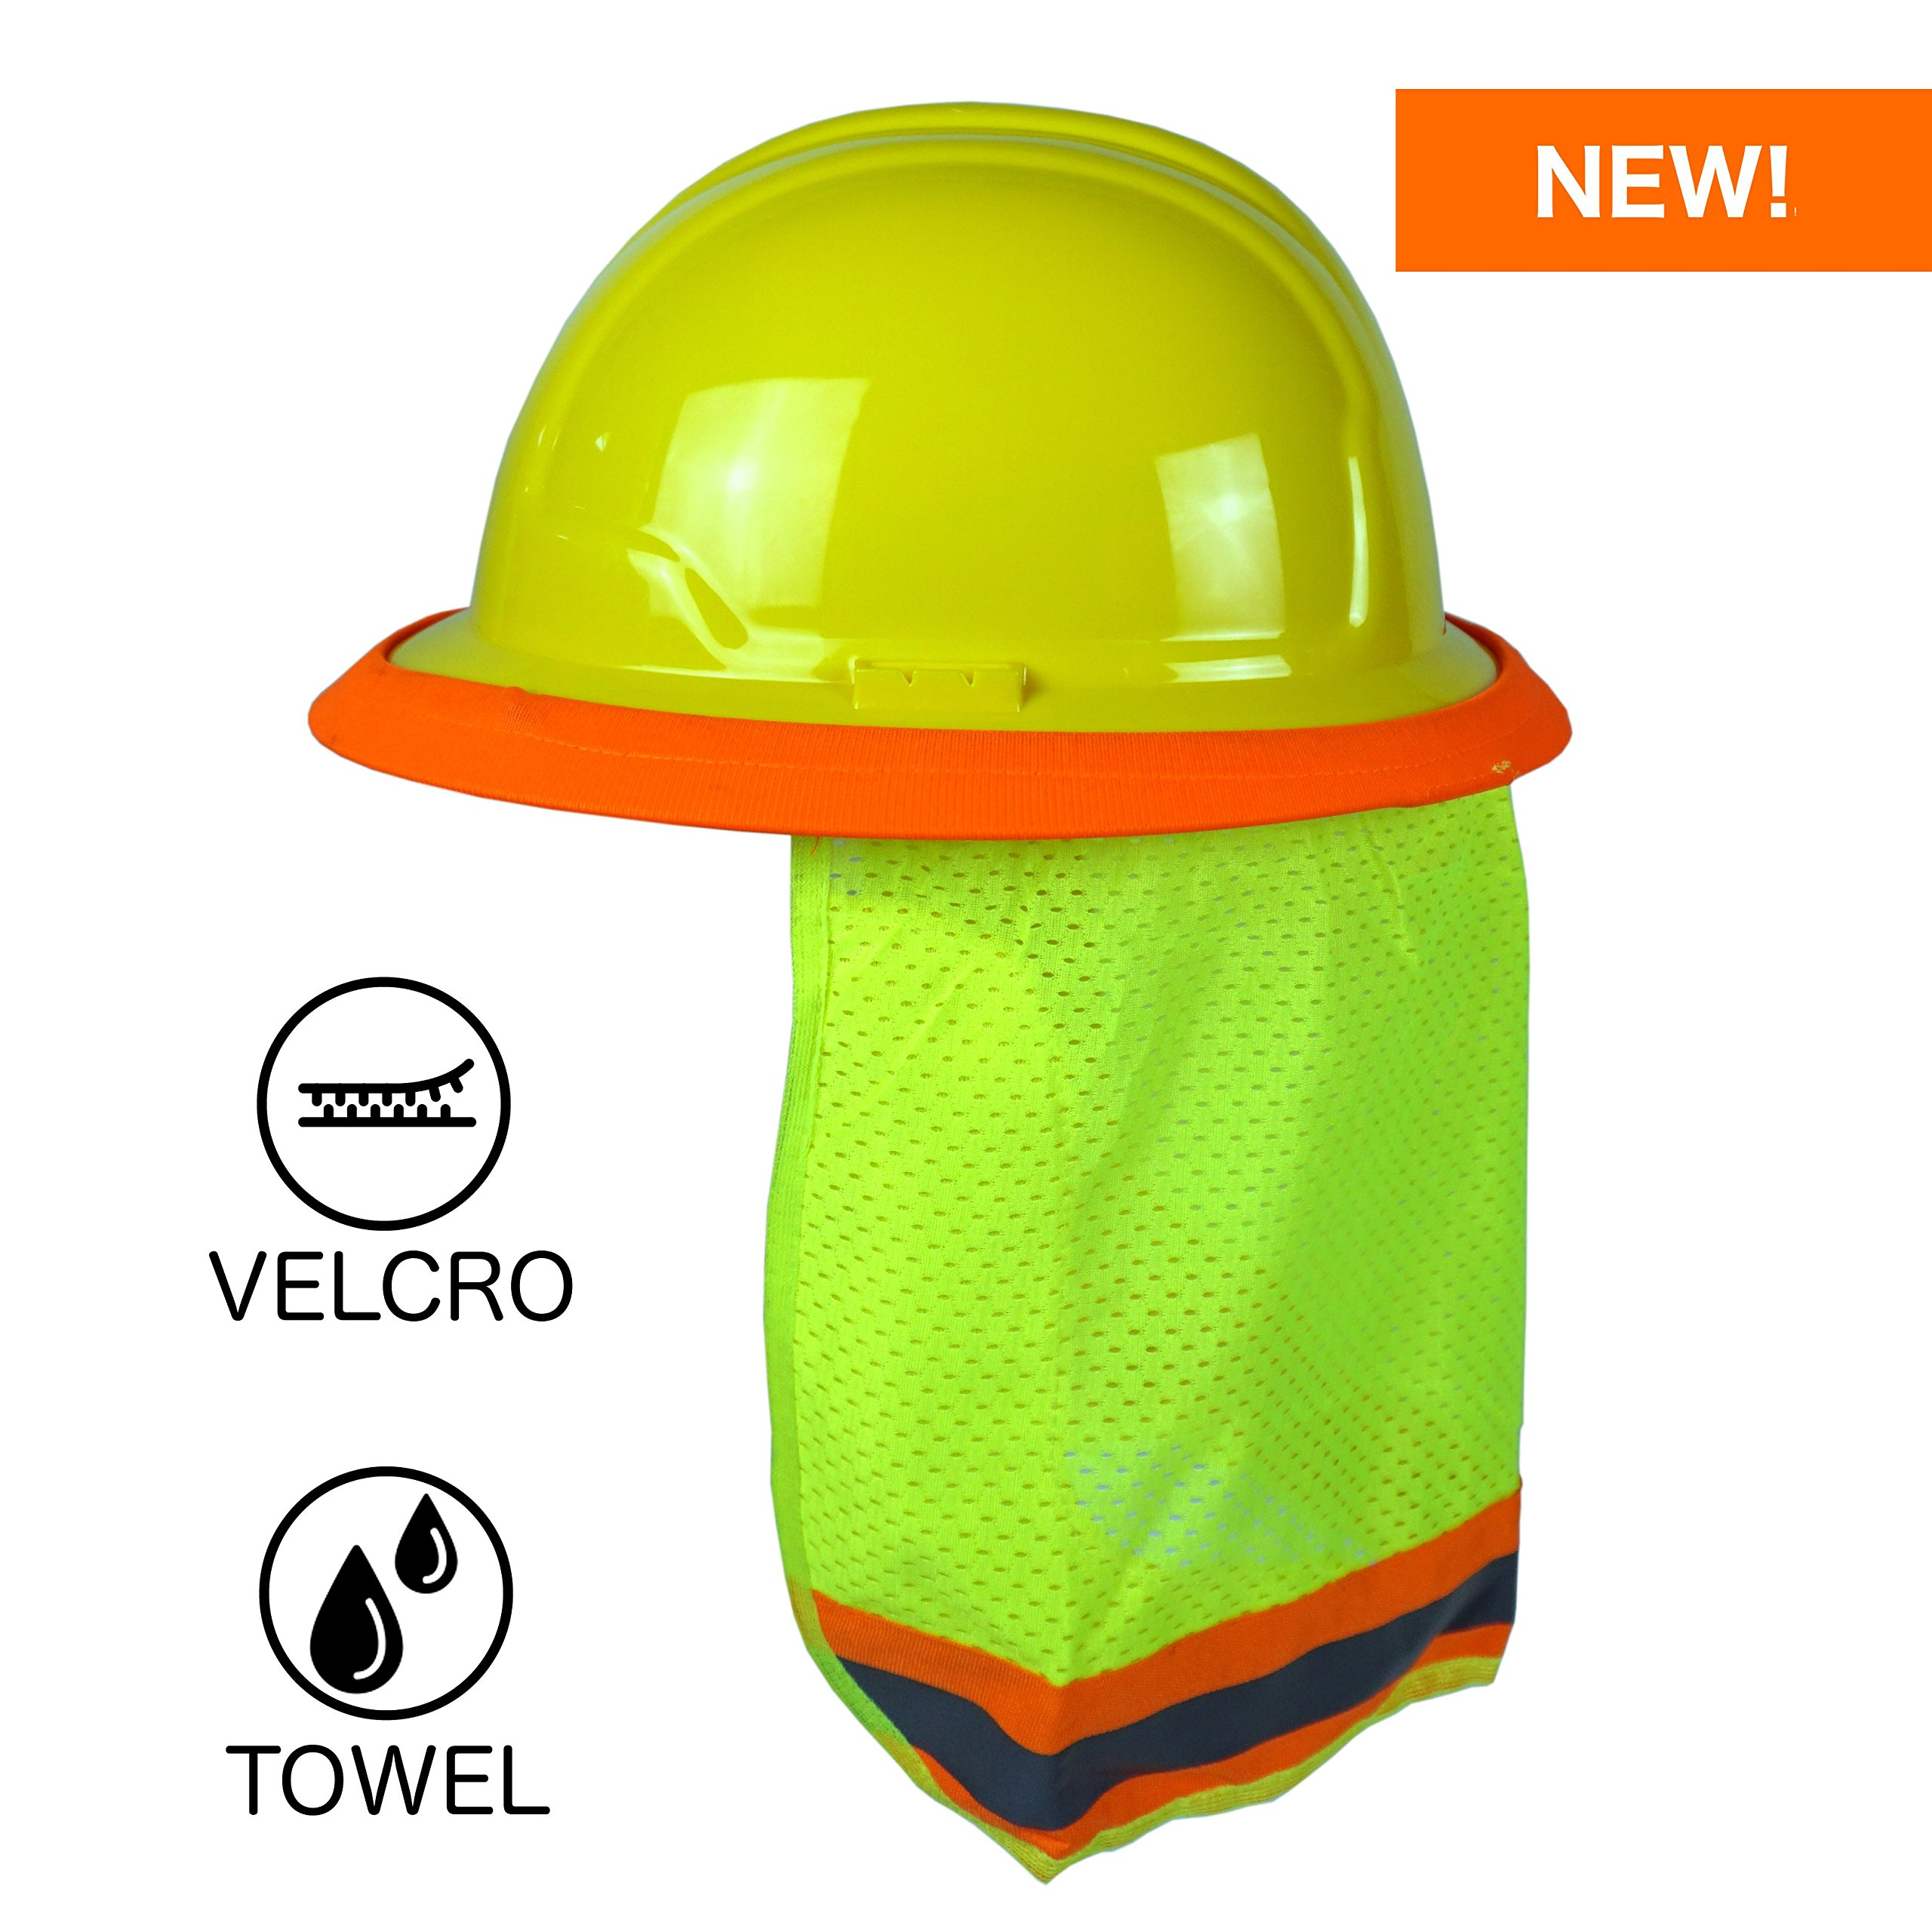 BEST EVER Pro Hard Hat Sun Shade. Premium Neck Shield with Velcro Fasteners and Built In Sweat Towel. Fits Both Full & Standard Brim Safety Helmets. Ideal for Construction, Landscaping, Gardening